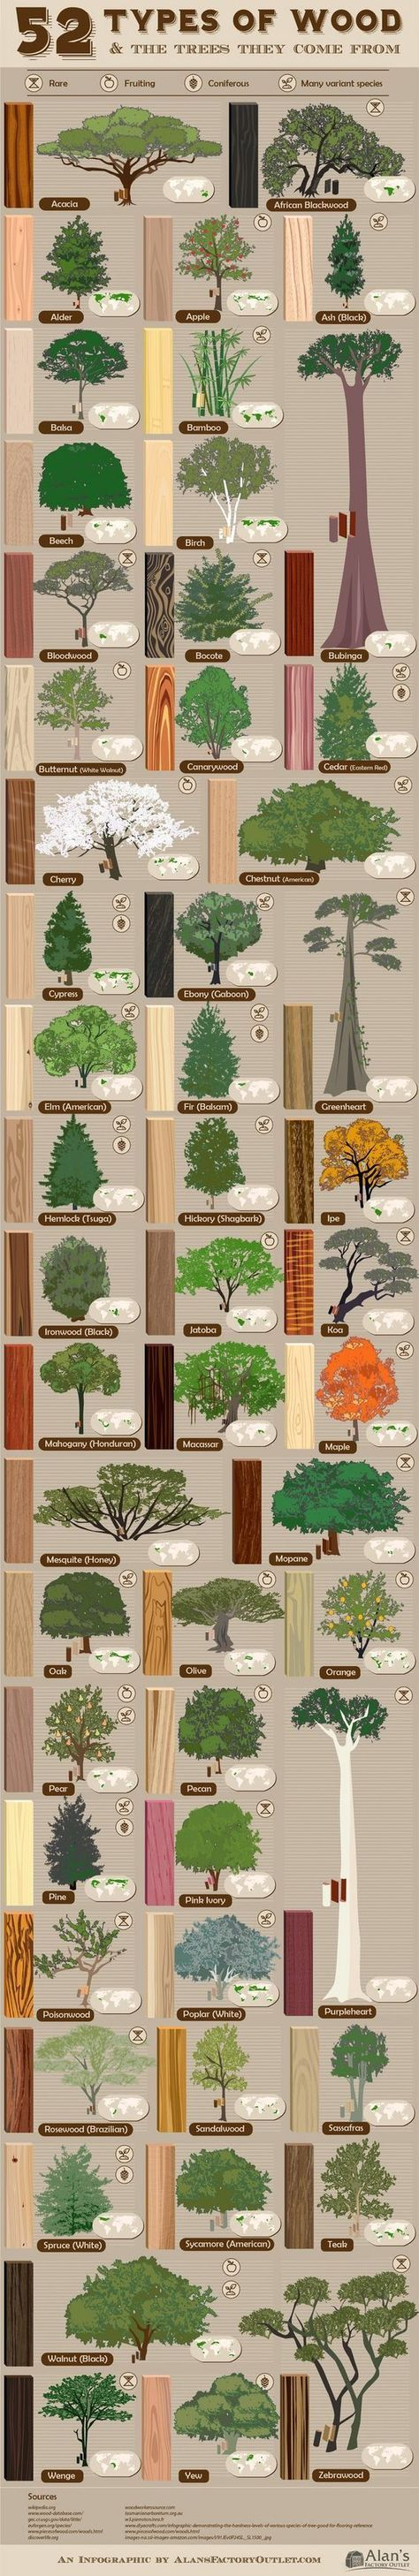 Get to know your wood! 52 types of timber and origin trees. - Imgur